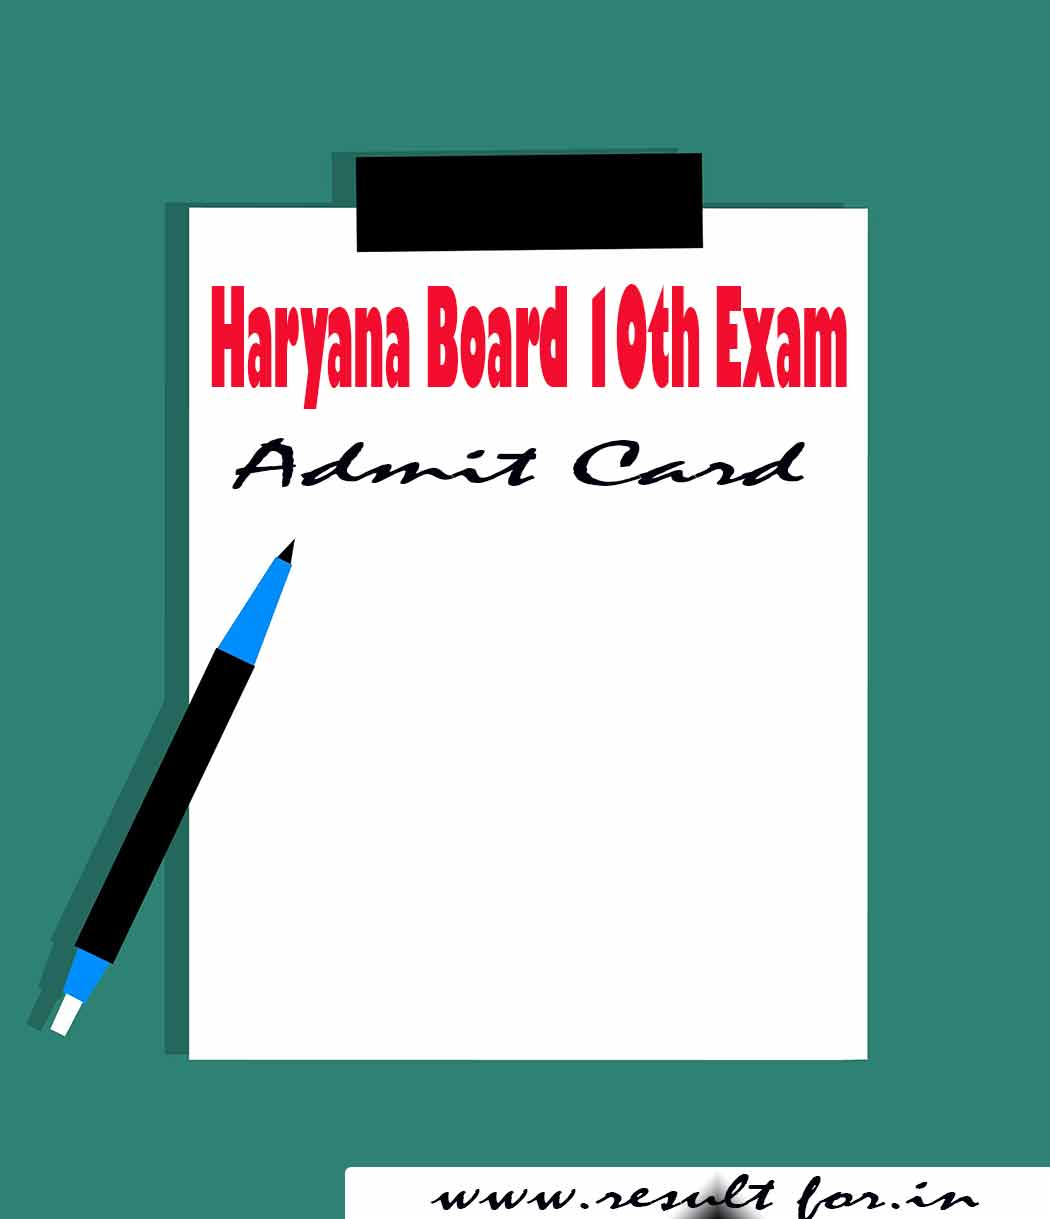 haryana board 10th exam admit card detail, haryana board 10th exam admit card, hbse exam admit card 2019, haryana board exam admit card, haryana board 10th exam admit card, step to download haryana board exam admti card , haryana board examination,